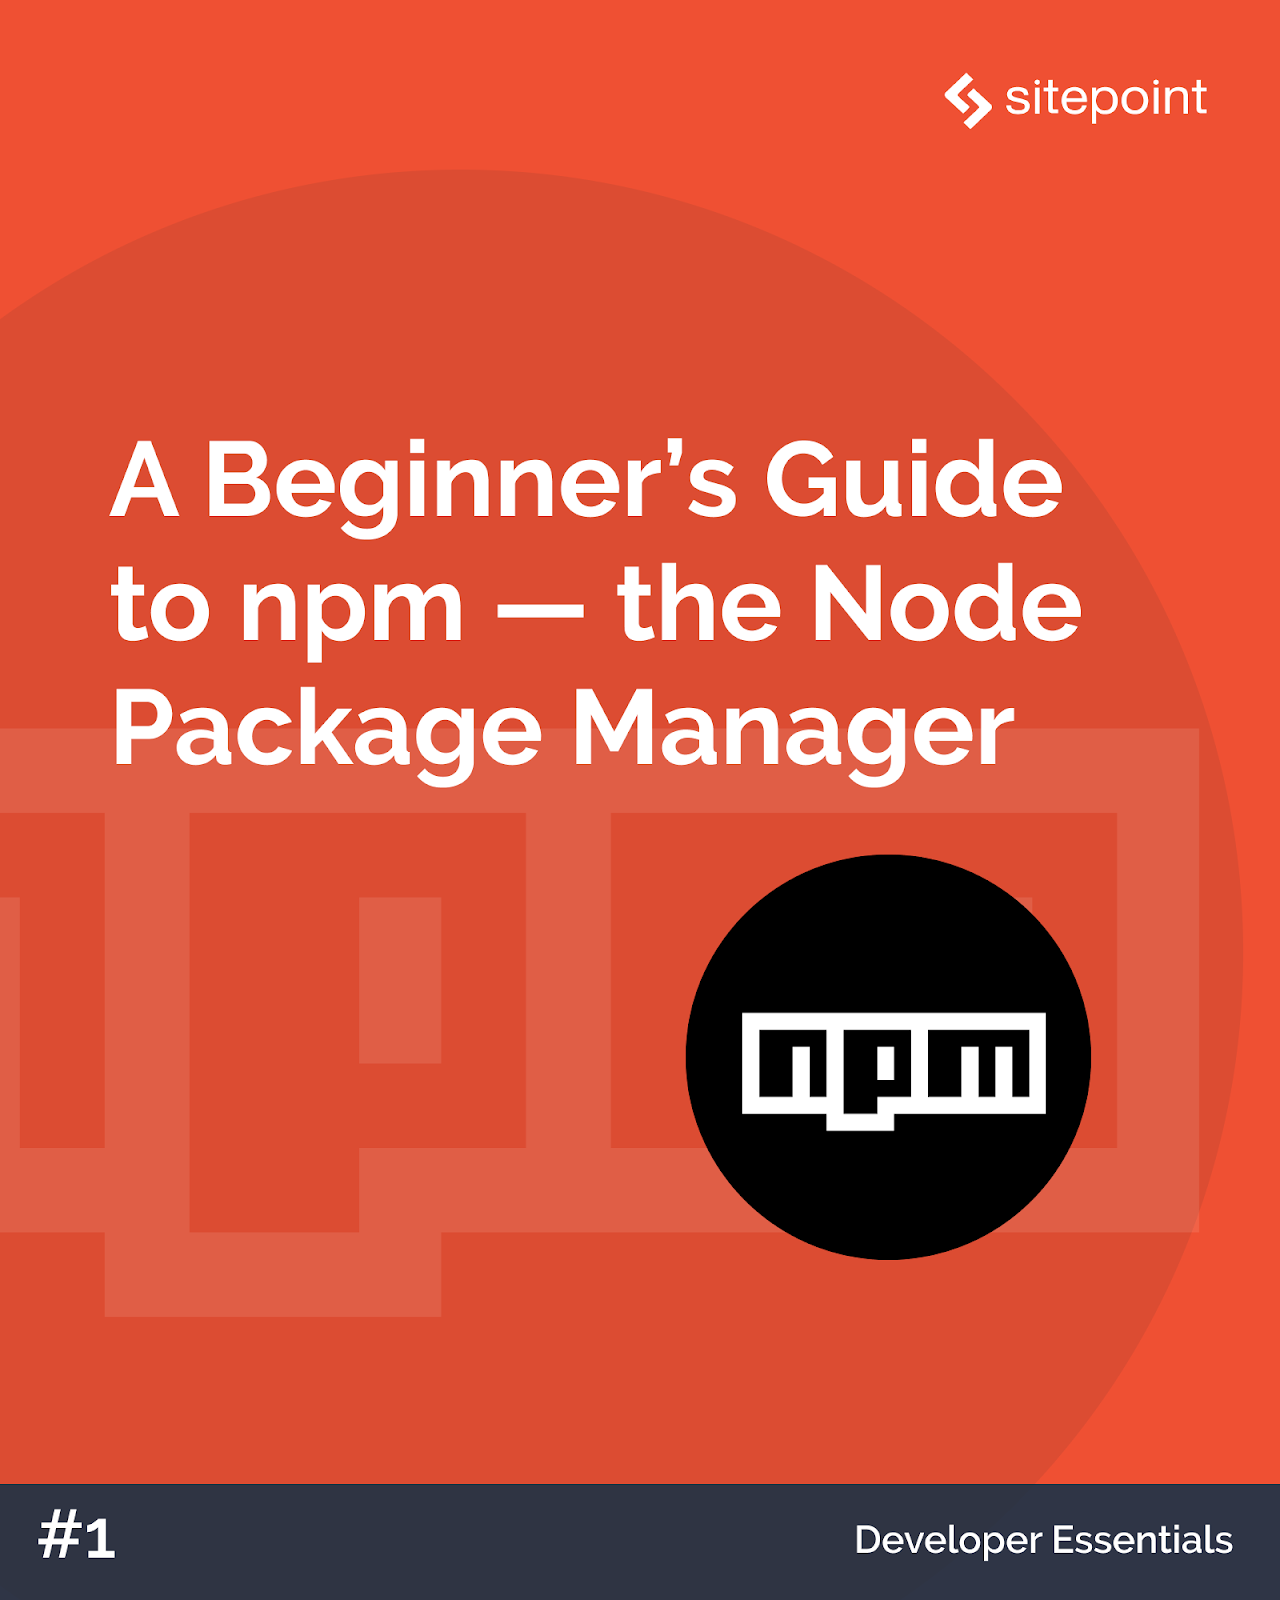 A Beginner's Guide to npm, the Node Package Manager cover